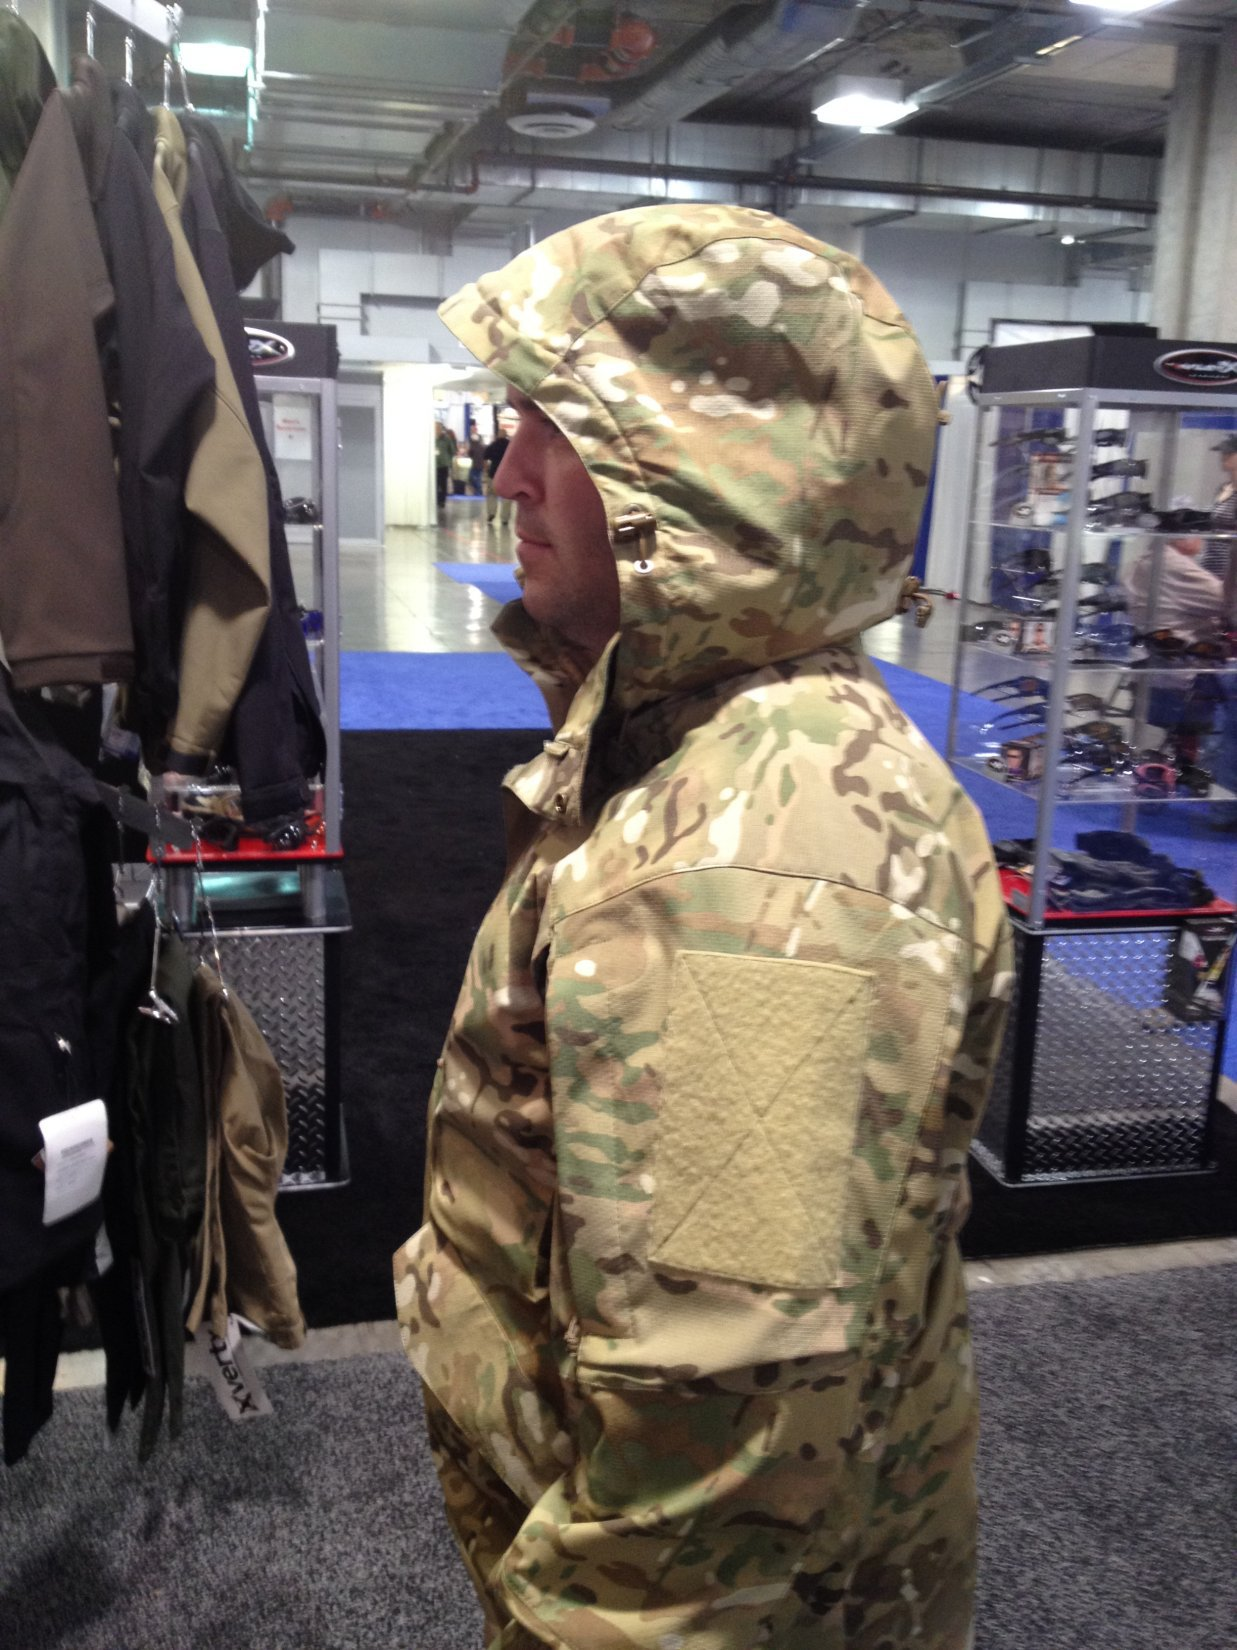 Vertx Tactical Smock Combat Jacket Wearable Go Bag Darrel Morrow at SHOT Show 2012 DefenseReview.com DR 3 Vertx MultiCam Smock (Tactical Smock)/Hoodie Shell: Combat Smock/Tactical Jacket with Six (6) Internal/Integral 5.56mm Rifle Mag Pouches for Tactical Shooters! (Video!)